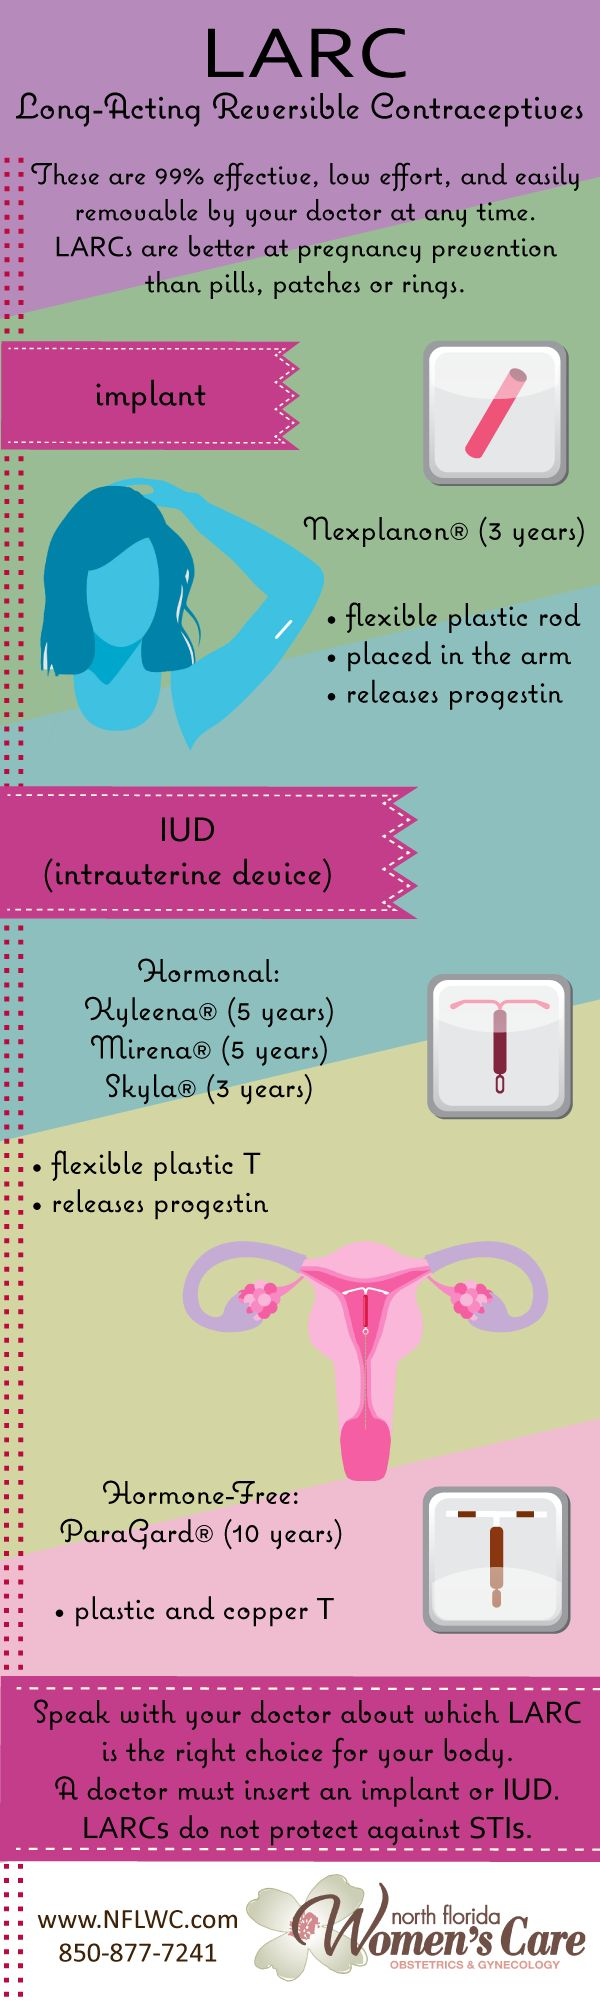 Long-Acting Reversible Contraceptives (LARCs) are the most effective, lowest-effort birth control options. NFLWC offers both the implant and IUDs.